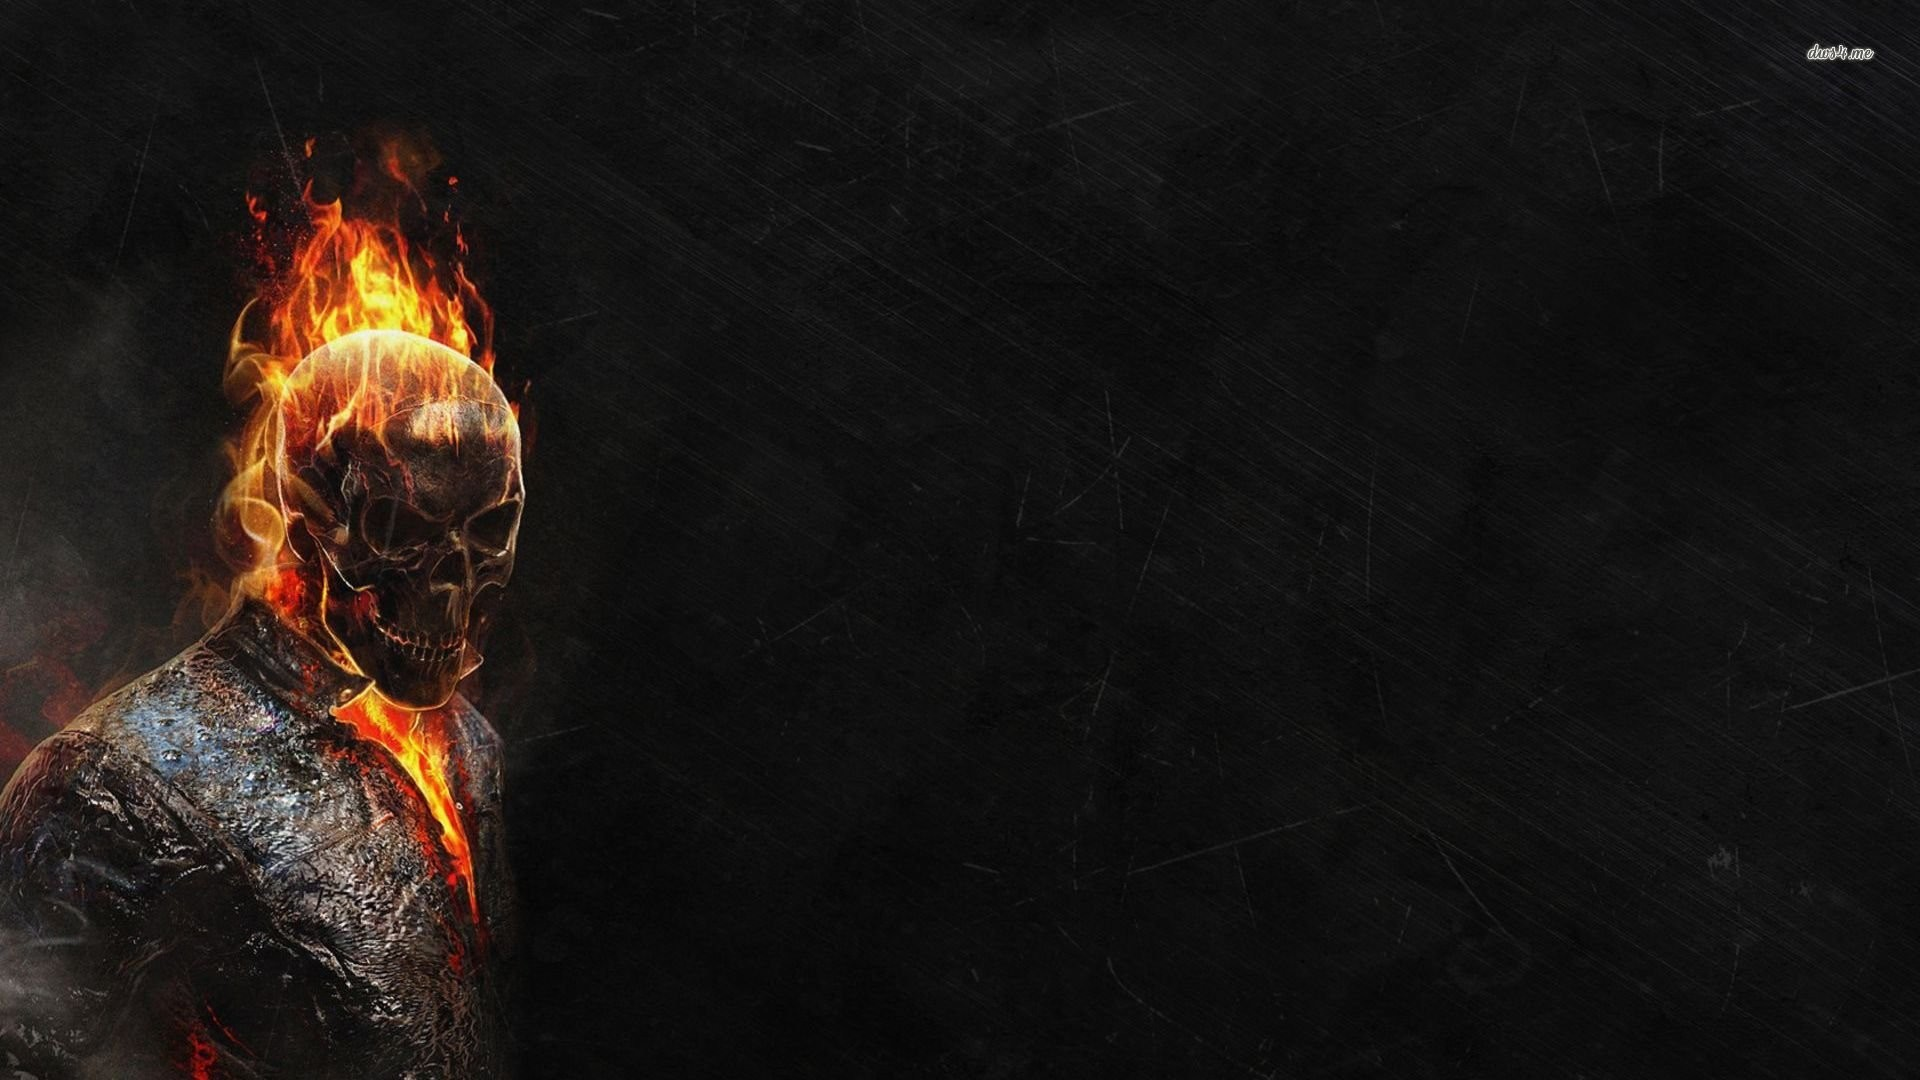 ghost rider wallpaper hd 60 images